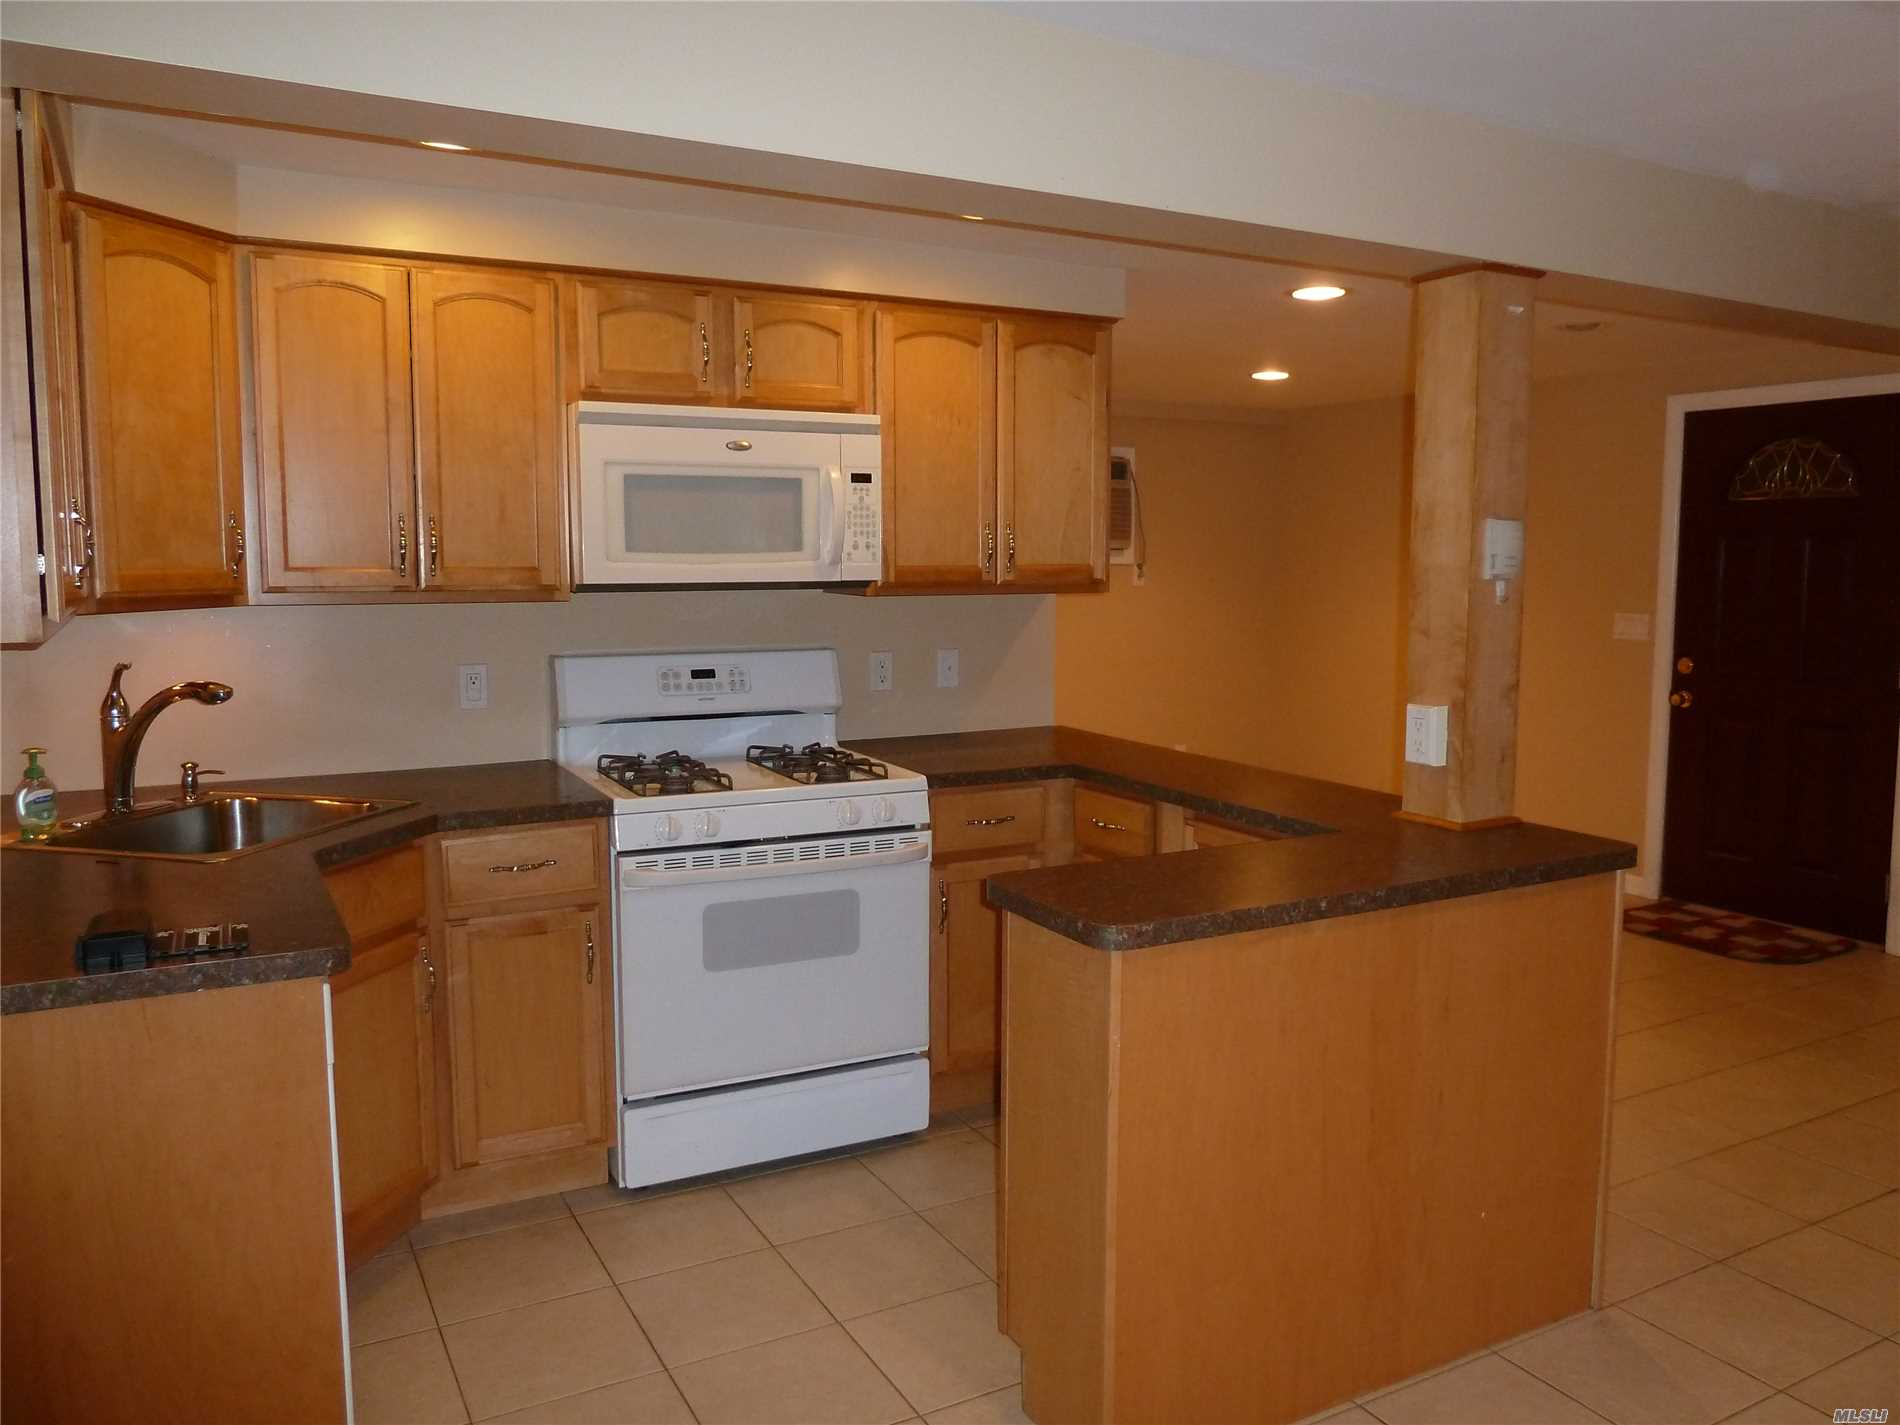 Spacious One Bed Room Apt With Open Concept Living Room, Dining Room, Kitchen With Granite Counter Tops. Large Den/Office With Sliding Doors To Patio And Yard. Tiles Floors Through Out.